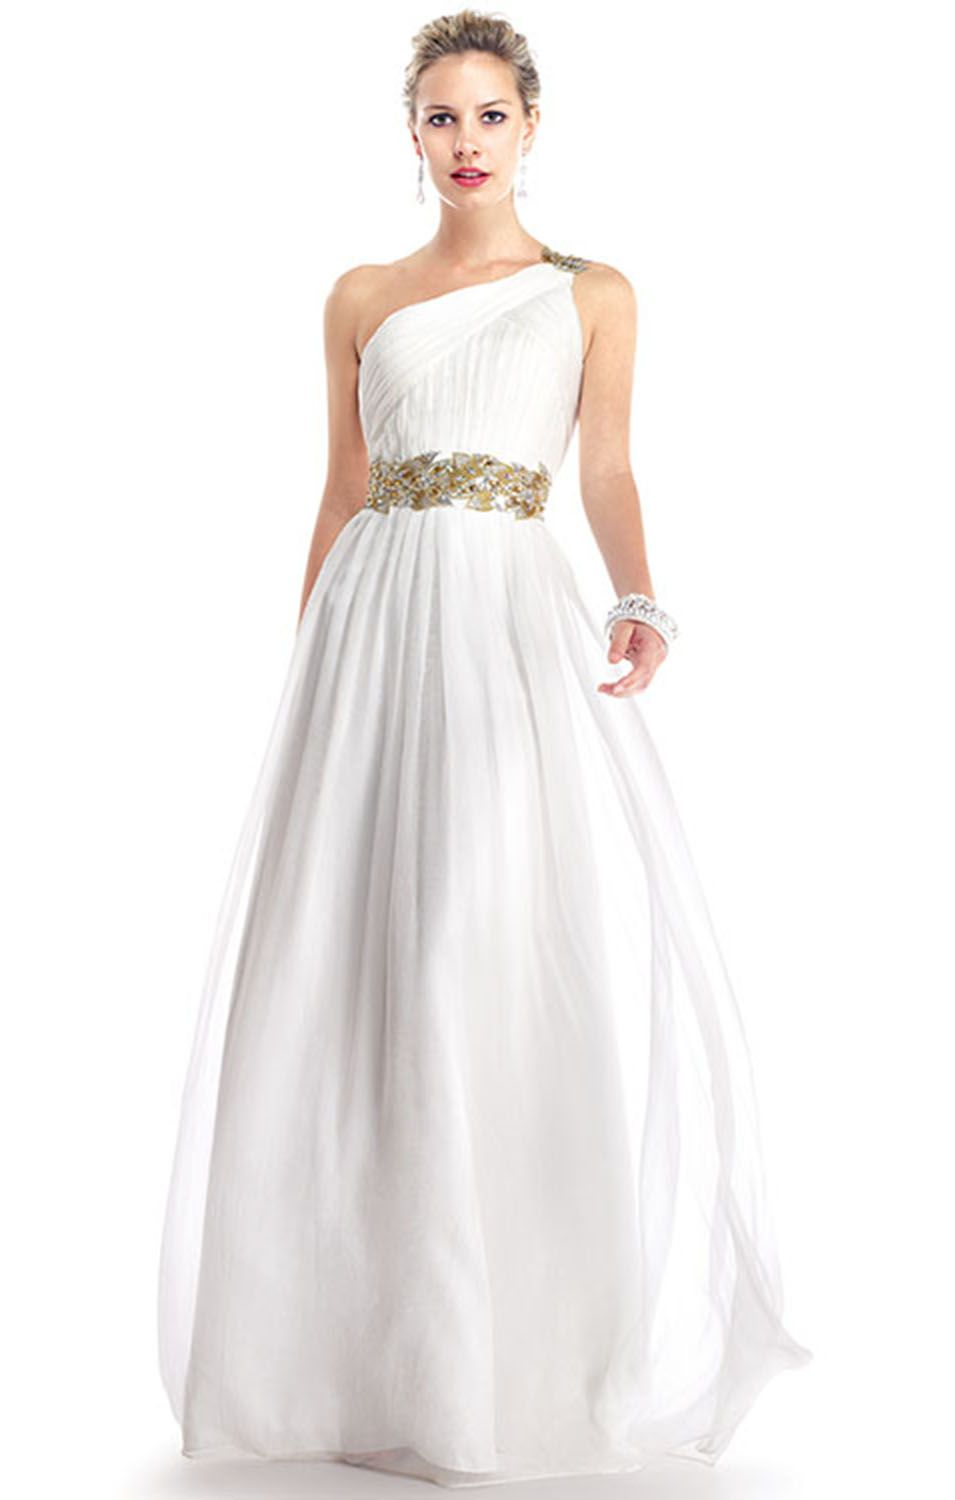 Greek Style White Dress 1 Hd Images Kylee And Shyla Pinterest